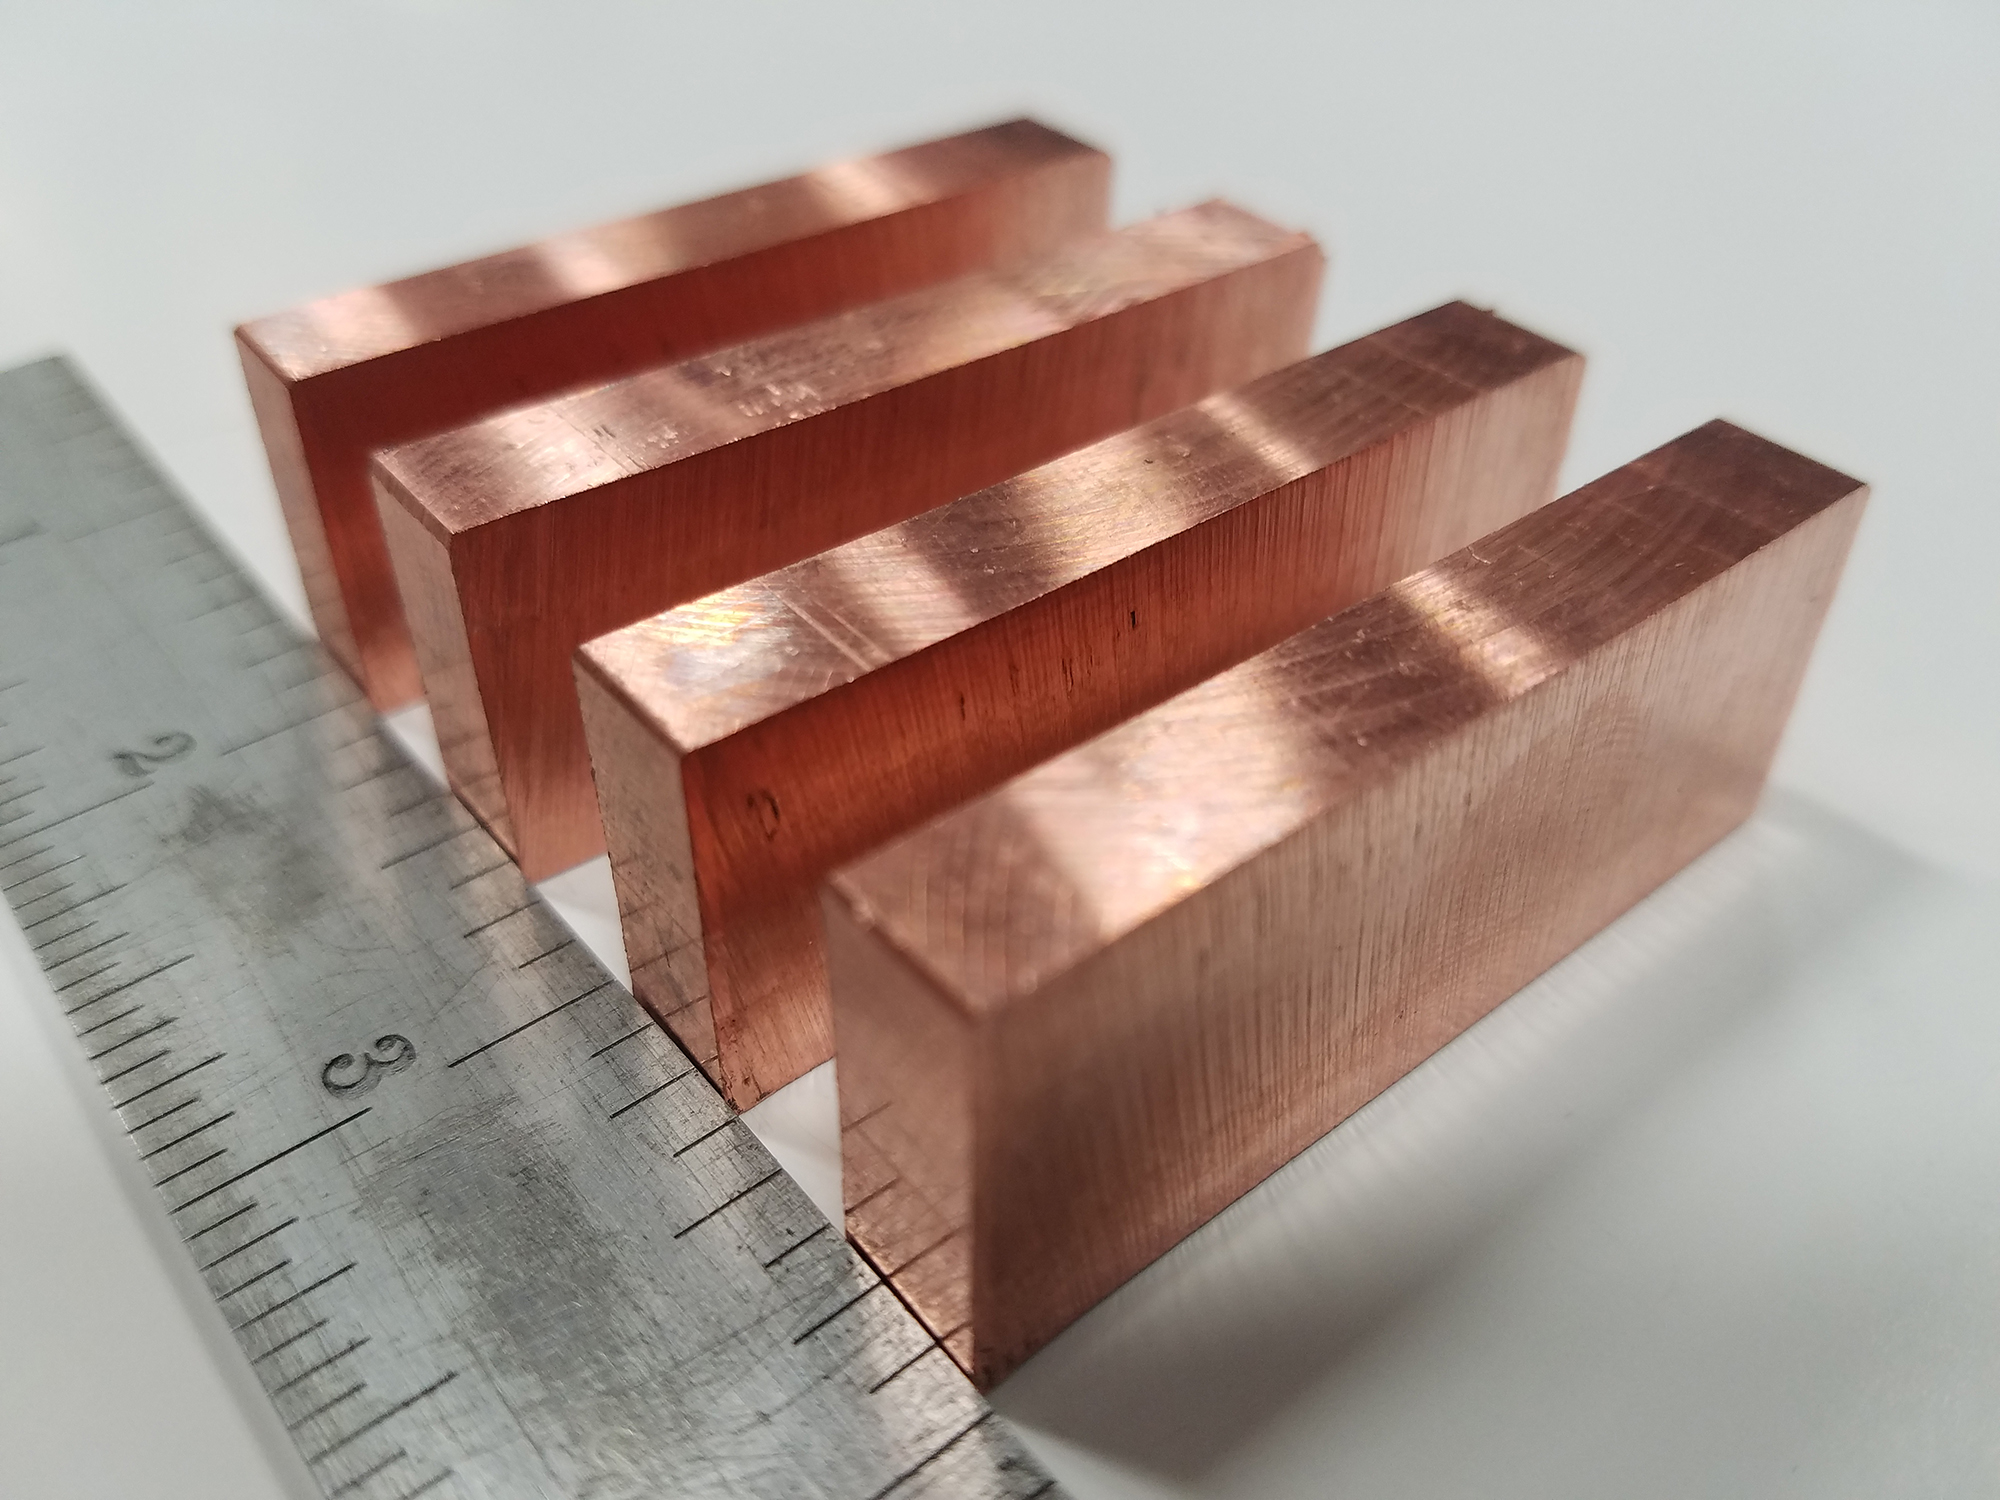 CNC Sawed Part - Material: Copper